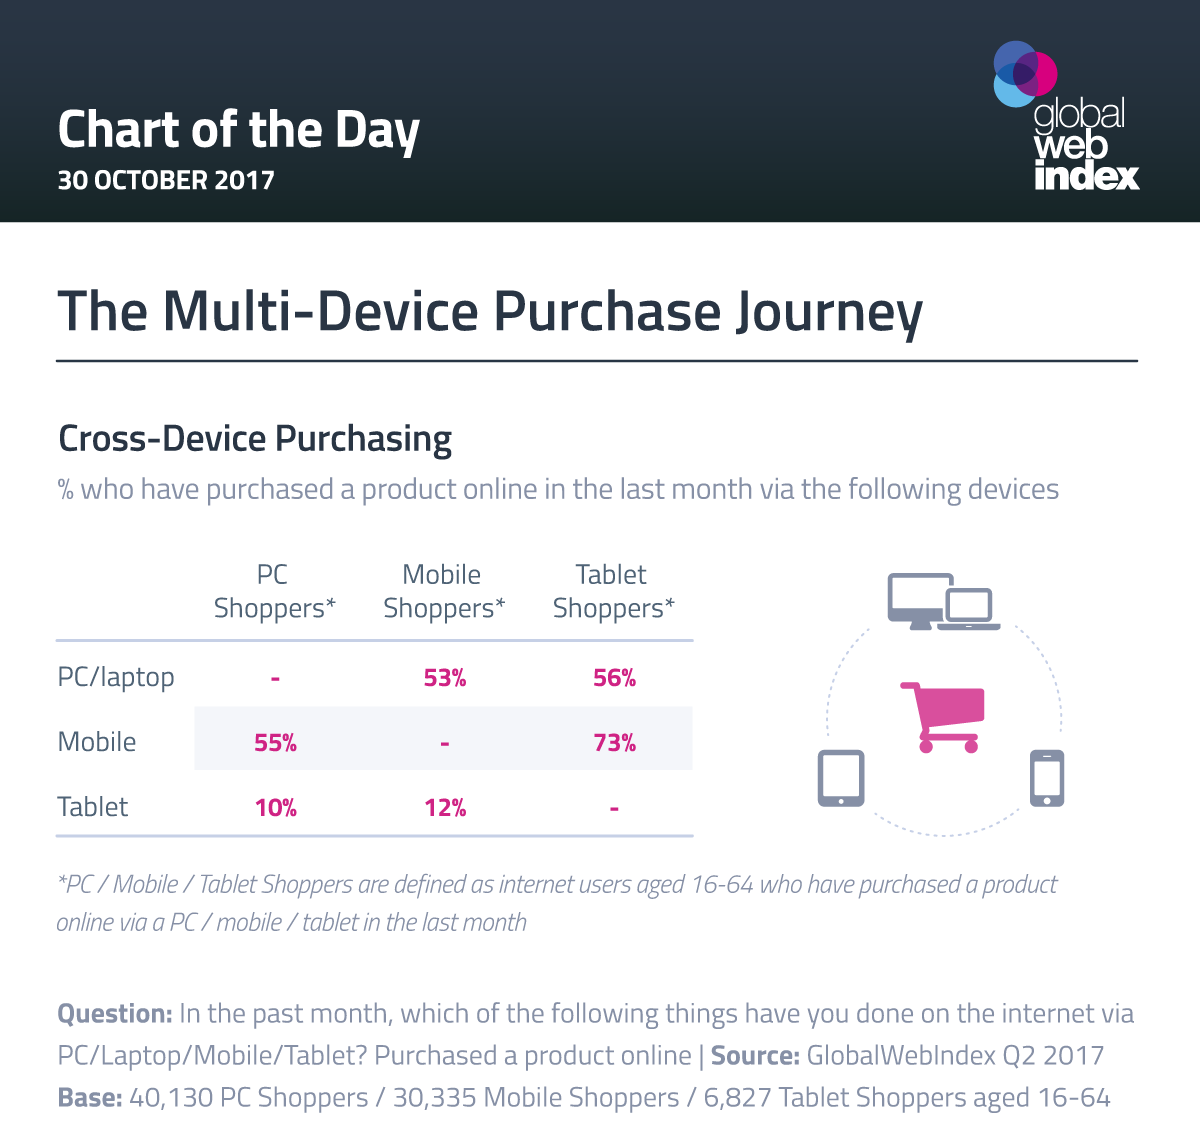 The Multi-Device Purchase Journey